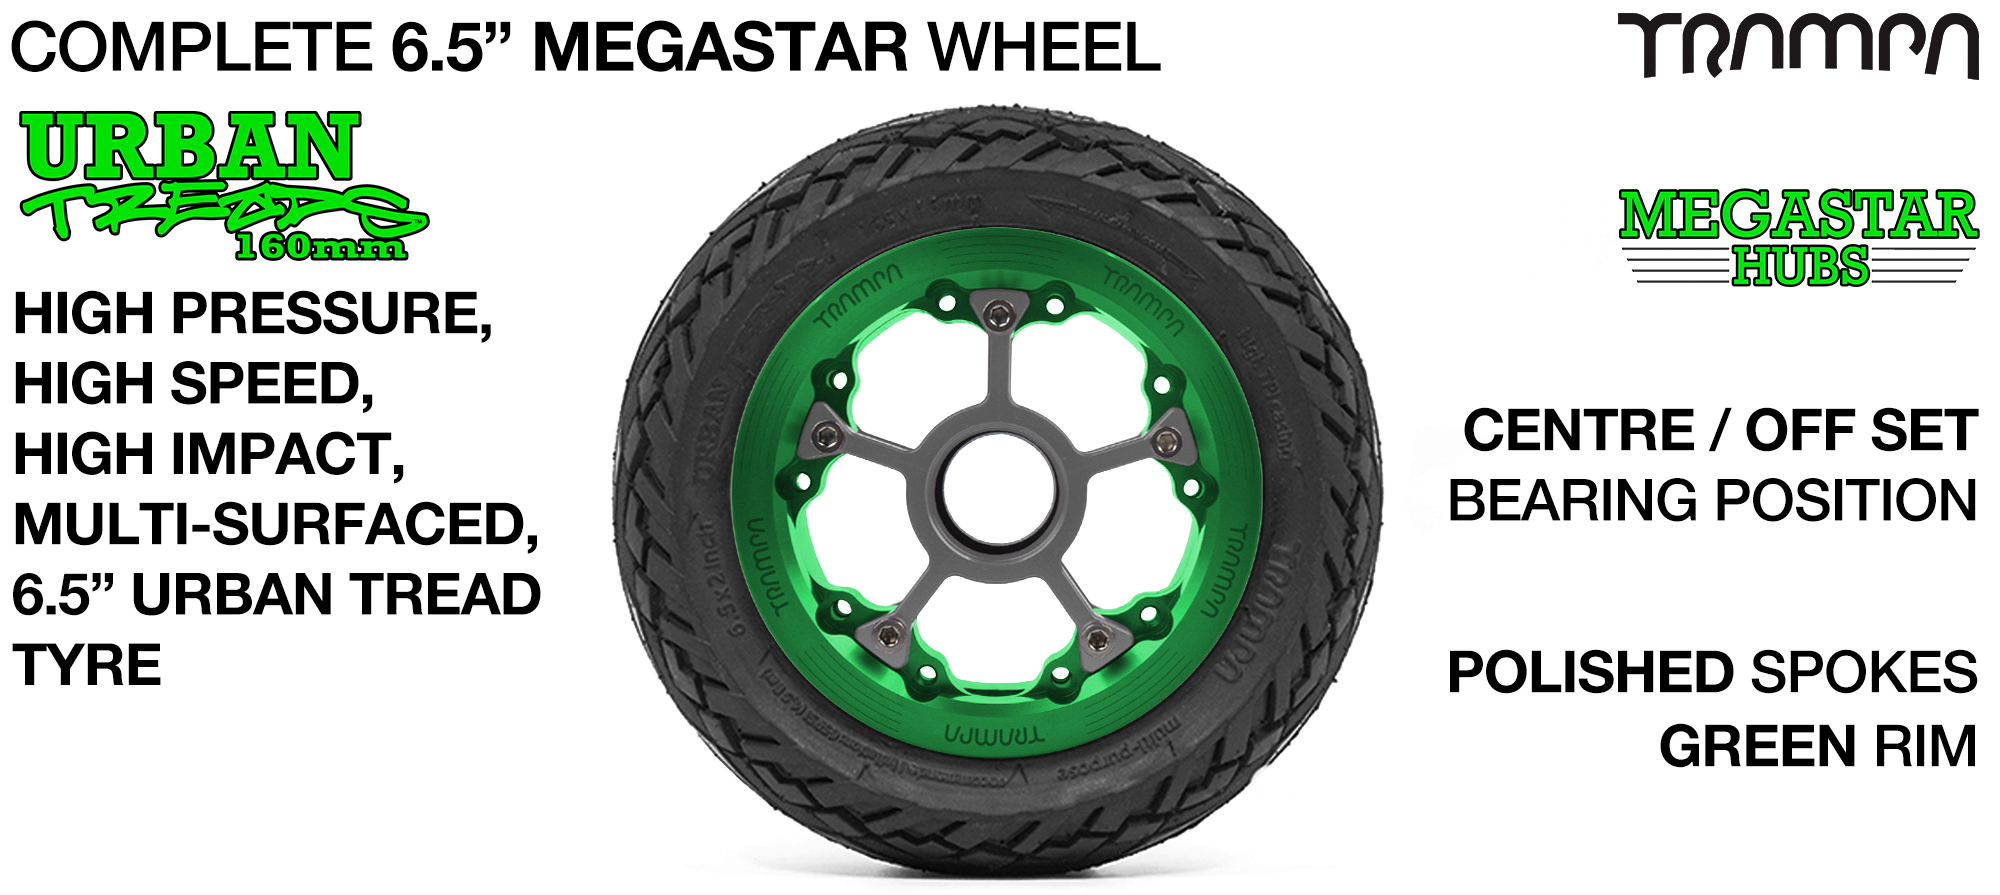 GREEN MEGASTAR Rims with POLISHED Spokes & 6.5 Inch URBAN Treads Tyres